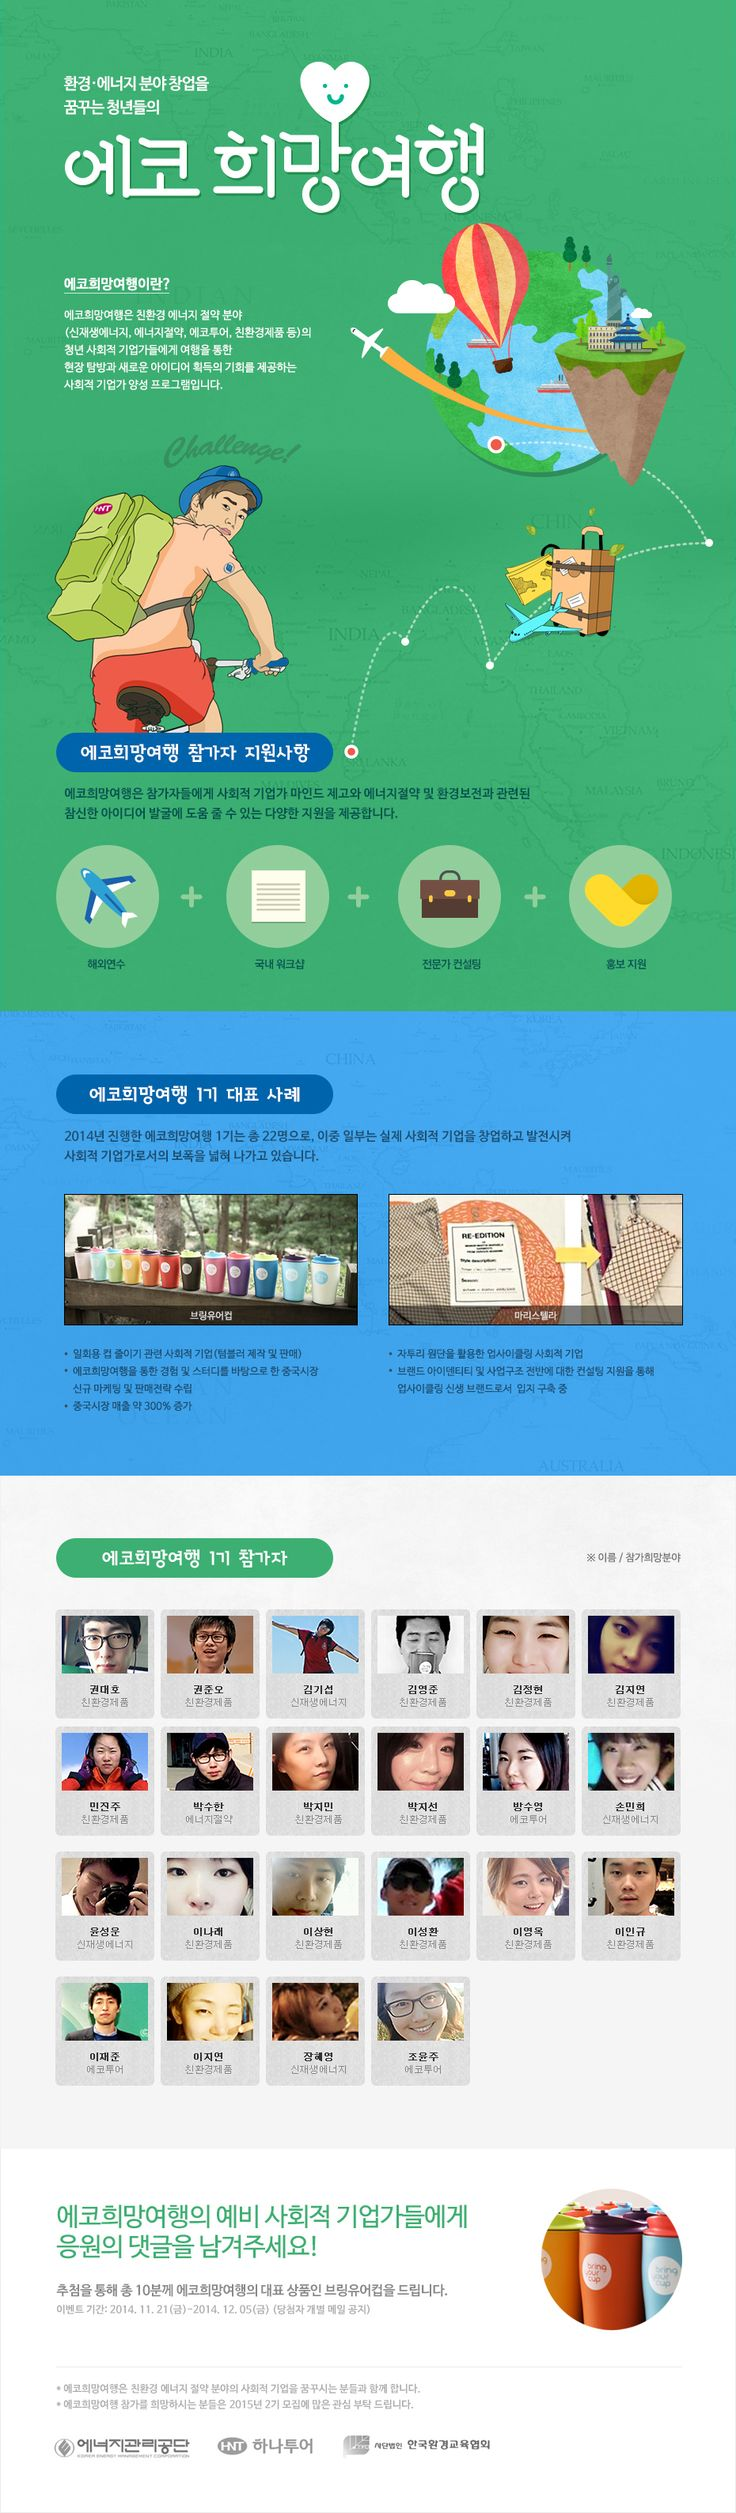 #해피빈 #http://event.happybean.naver.com/campaign/1000016284 #event #design #green…